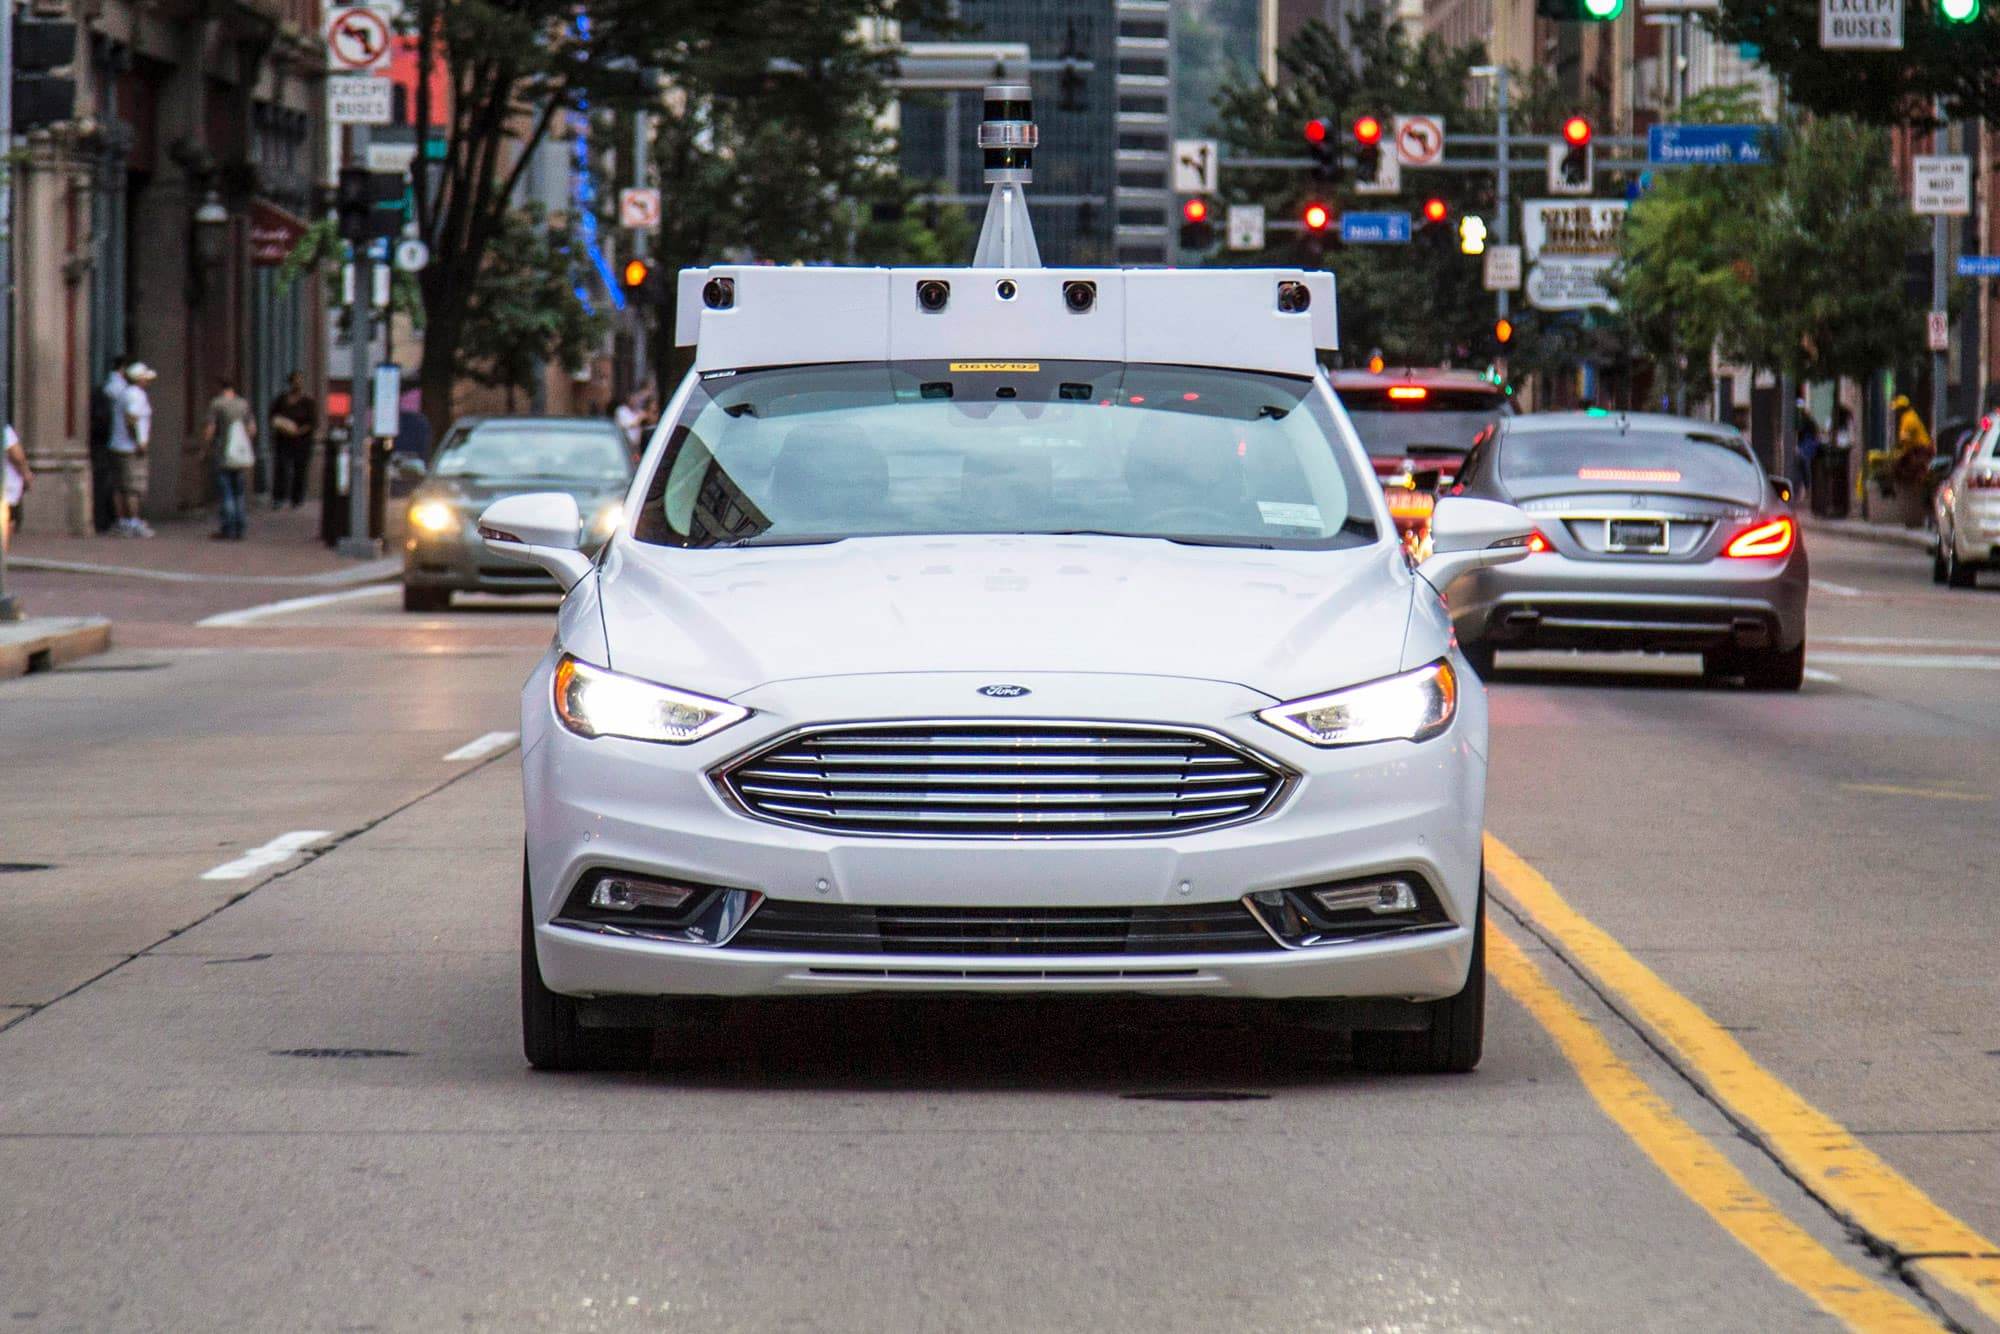 Ford teams with Domino's to test deliveries by autonomous